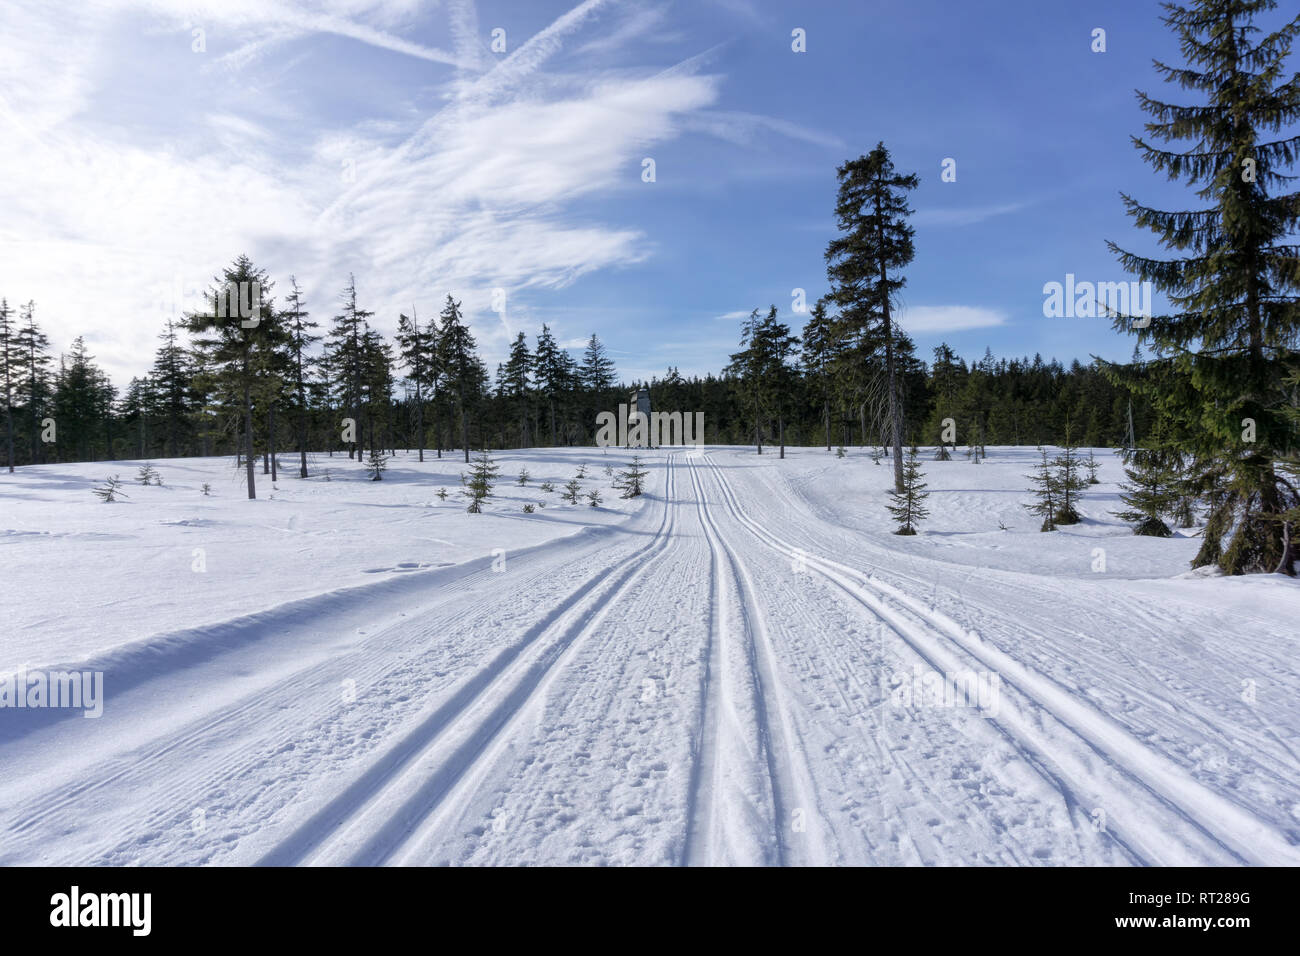 Winter mountain landscape with groomed ski track and blue sky in sunny day. Jizera Mountains, surroundings of Jakuszyce, Poland. - Stock Image